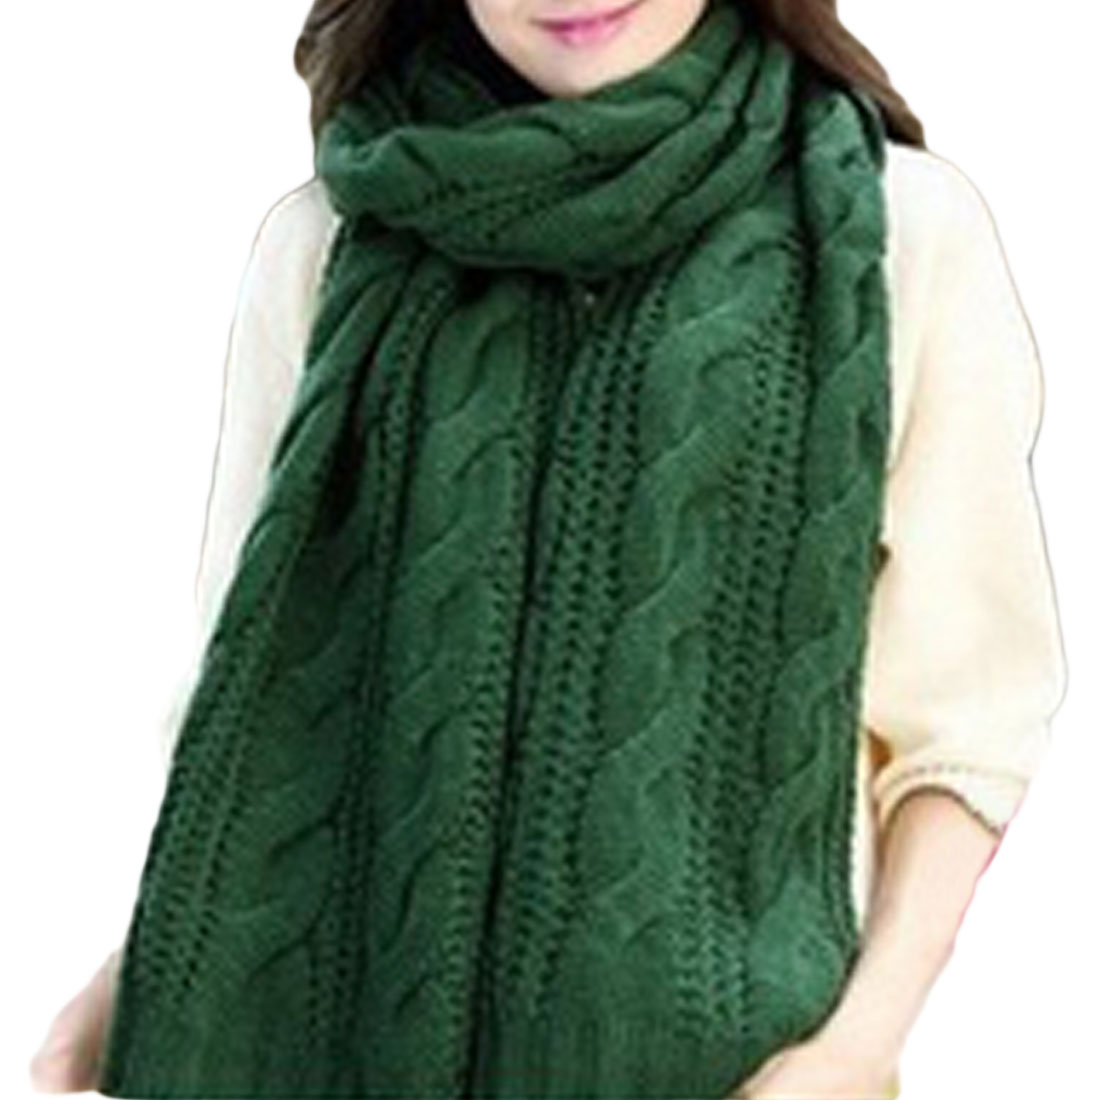 Charming Circle Cable Crochet Knit Scarf Shawl Wrap Winter Warm Cowl Neck Ginger Yellow knitting